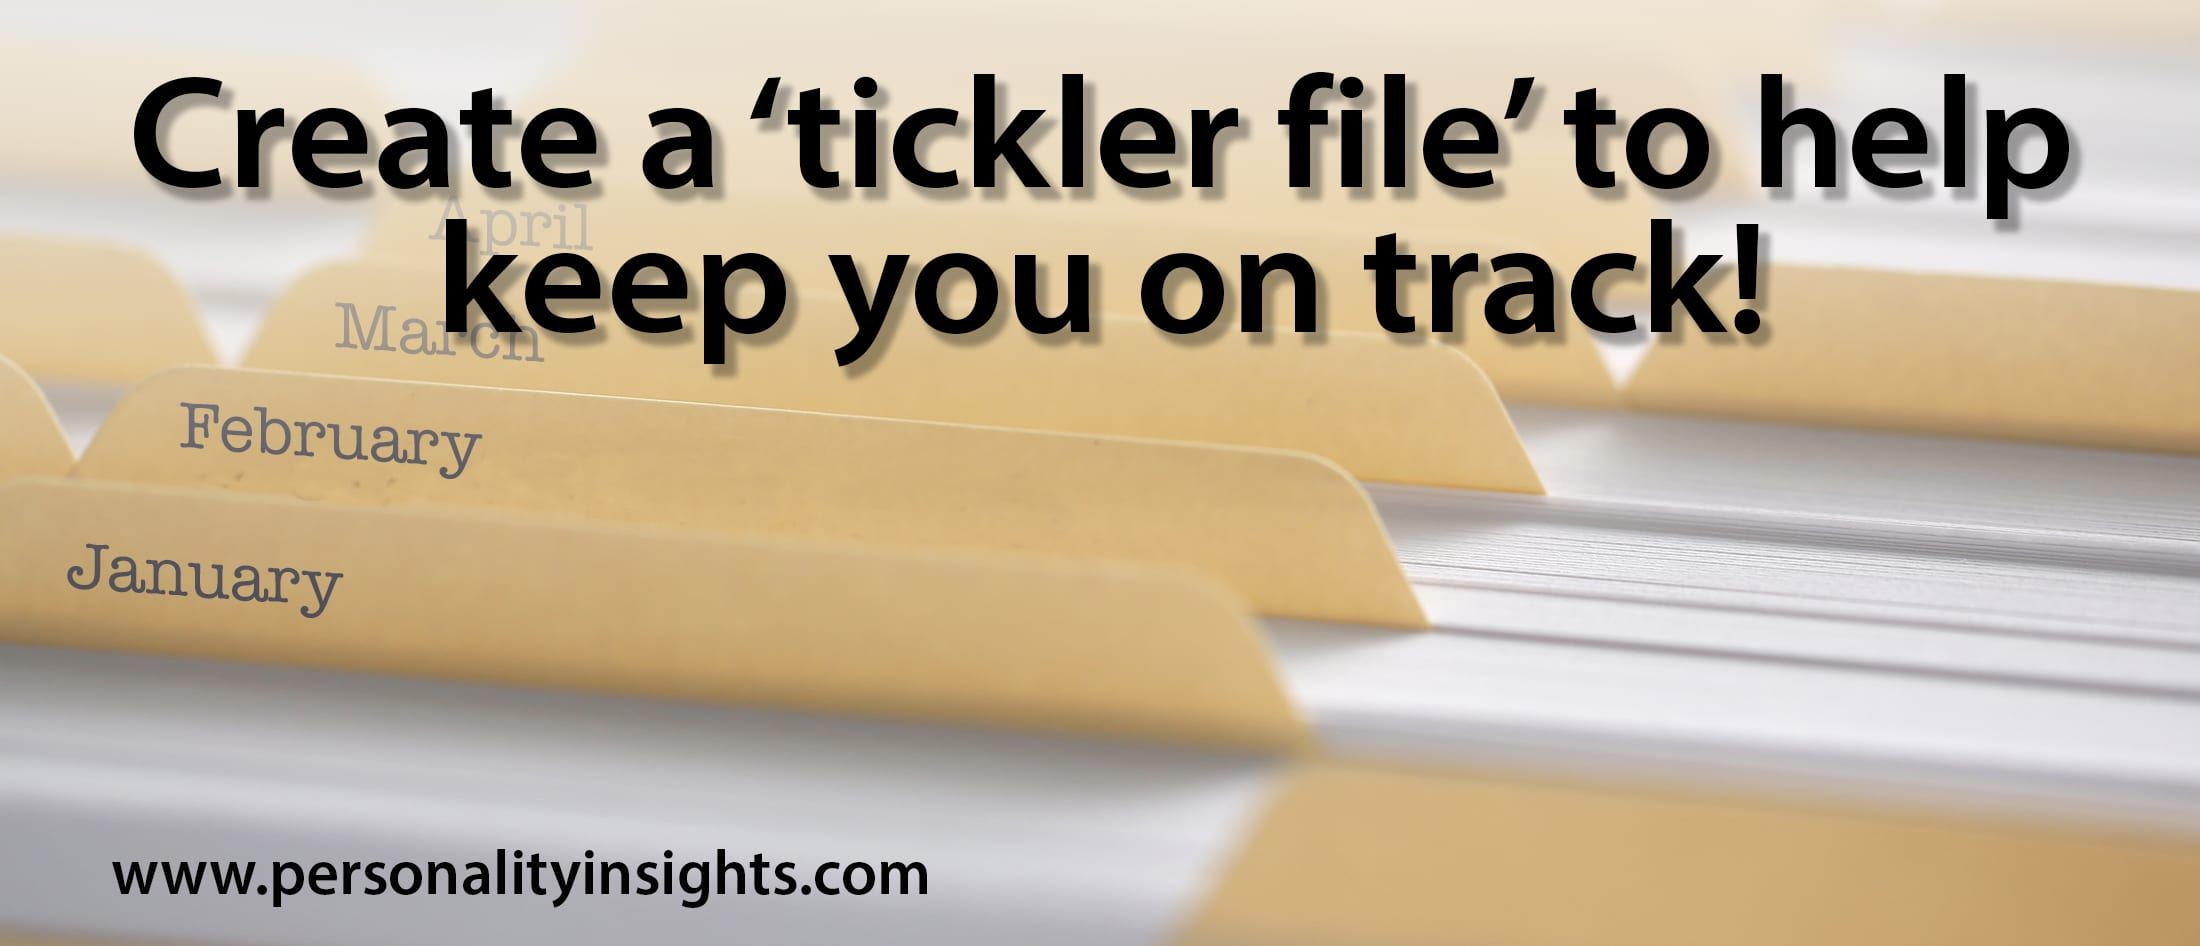 Tip: Create a 'tickler file' to help keep you on track!